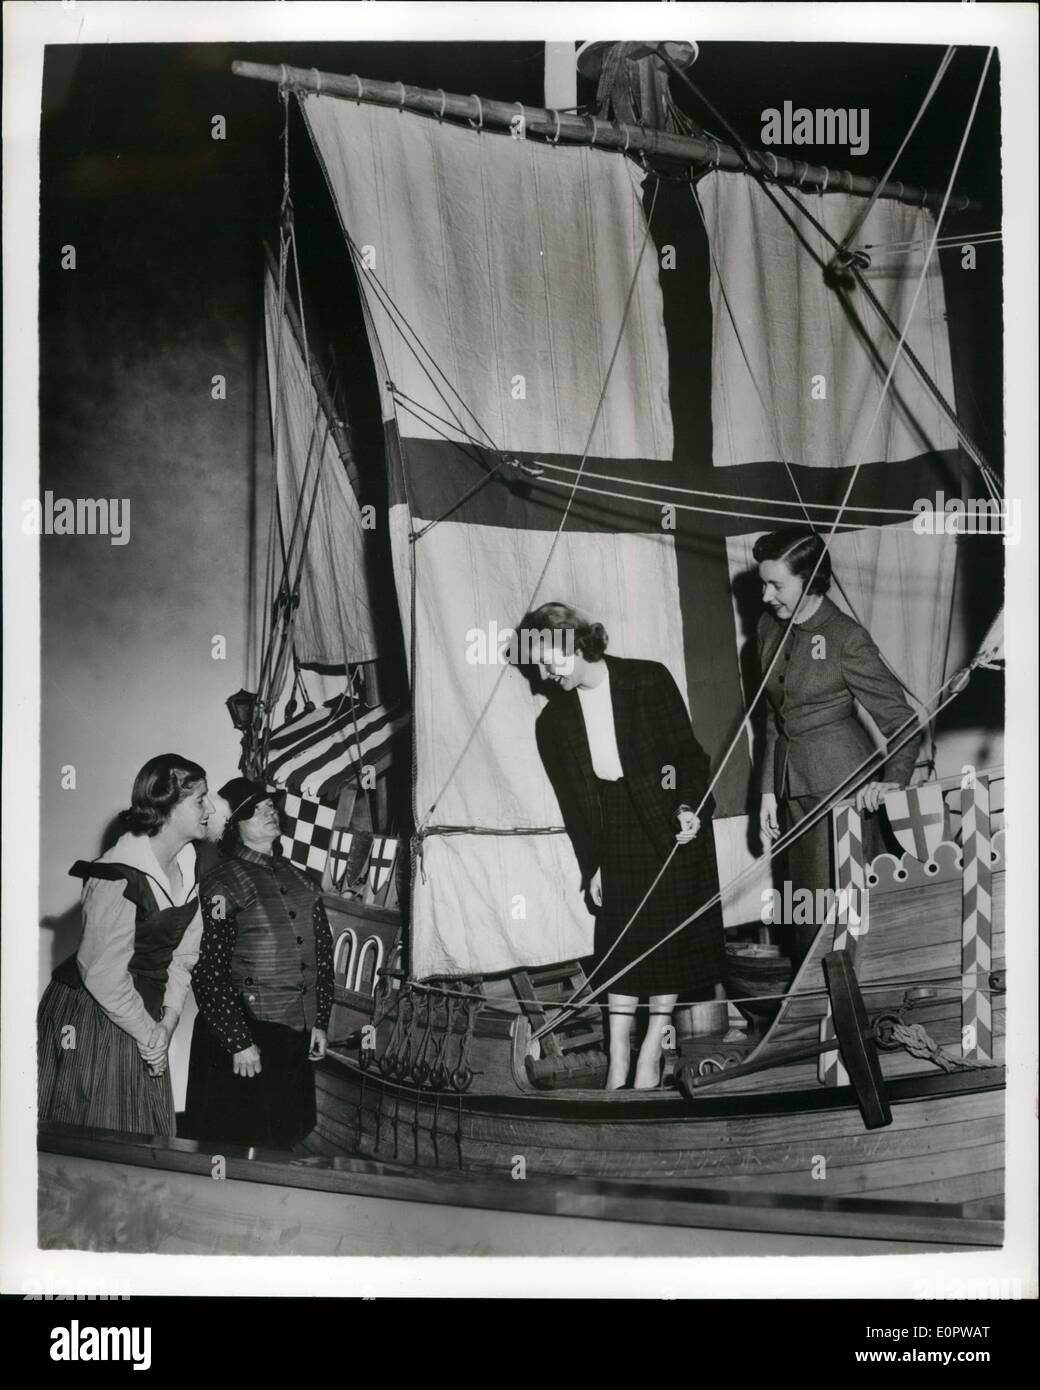 Mar. 03, 1957 - 15th Century Ship Reconstructed For Jamestown Festival: The British Government has installed a 140,000 exhibit - Stock Image